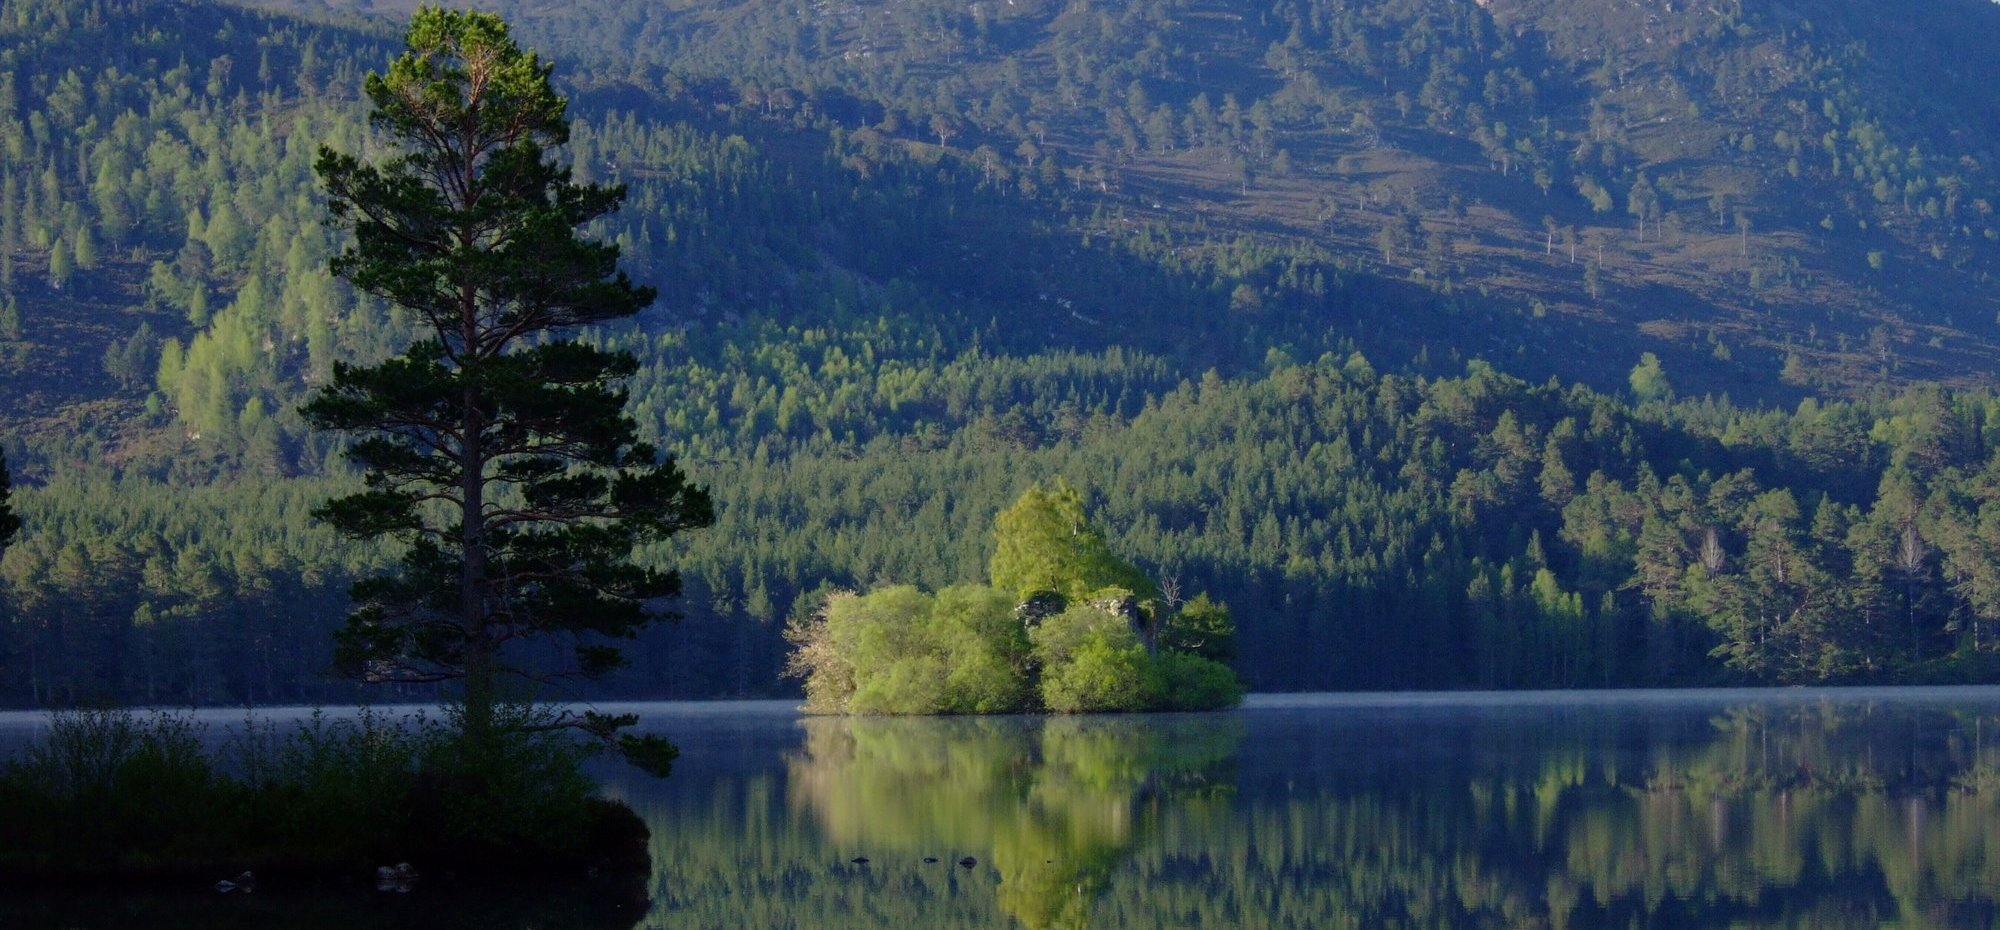 Loch an Eilein with the castle on the island